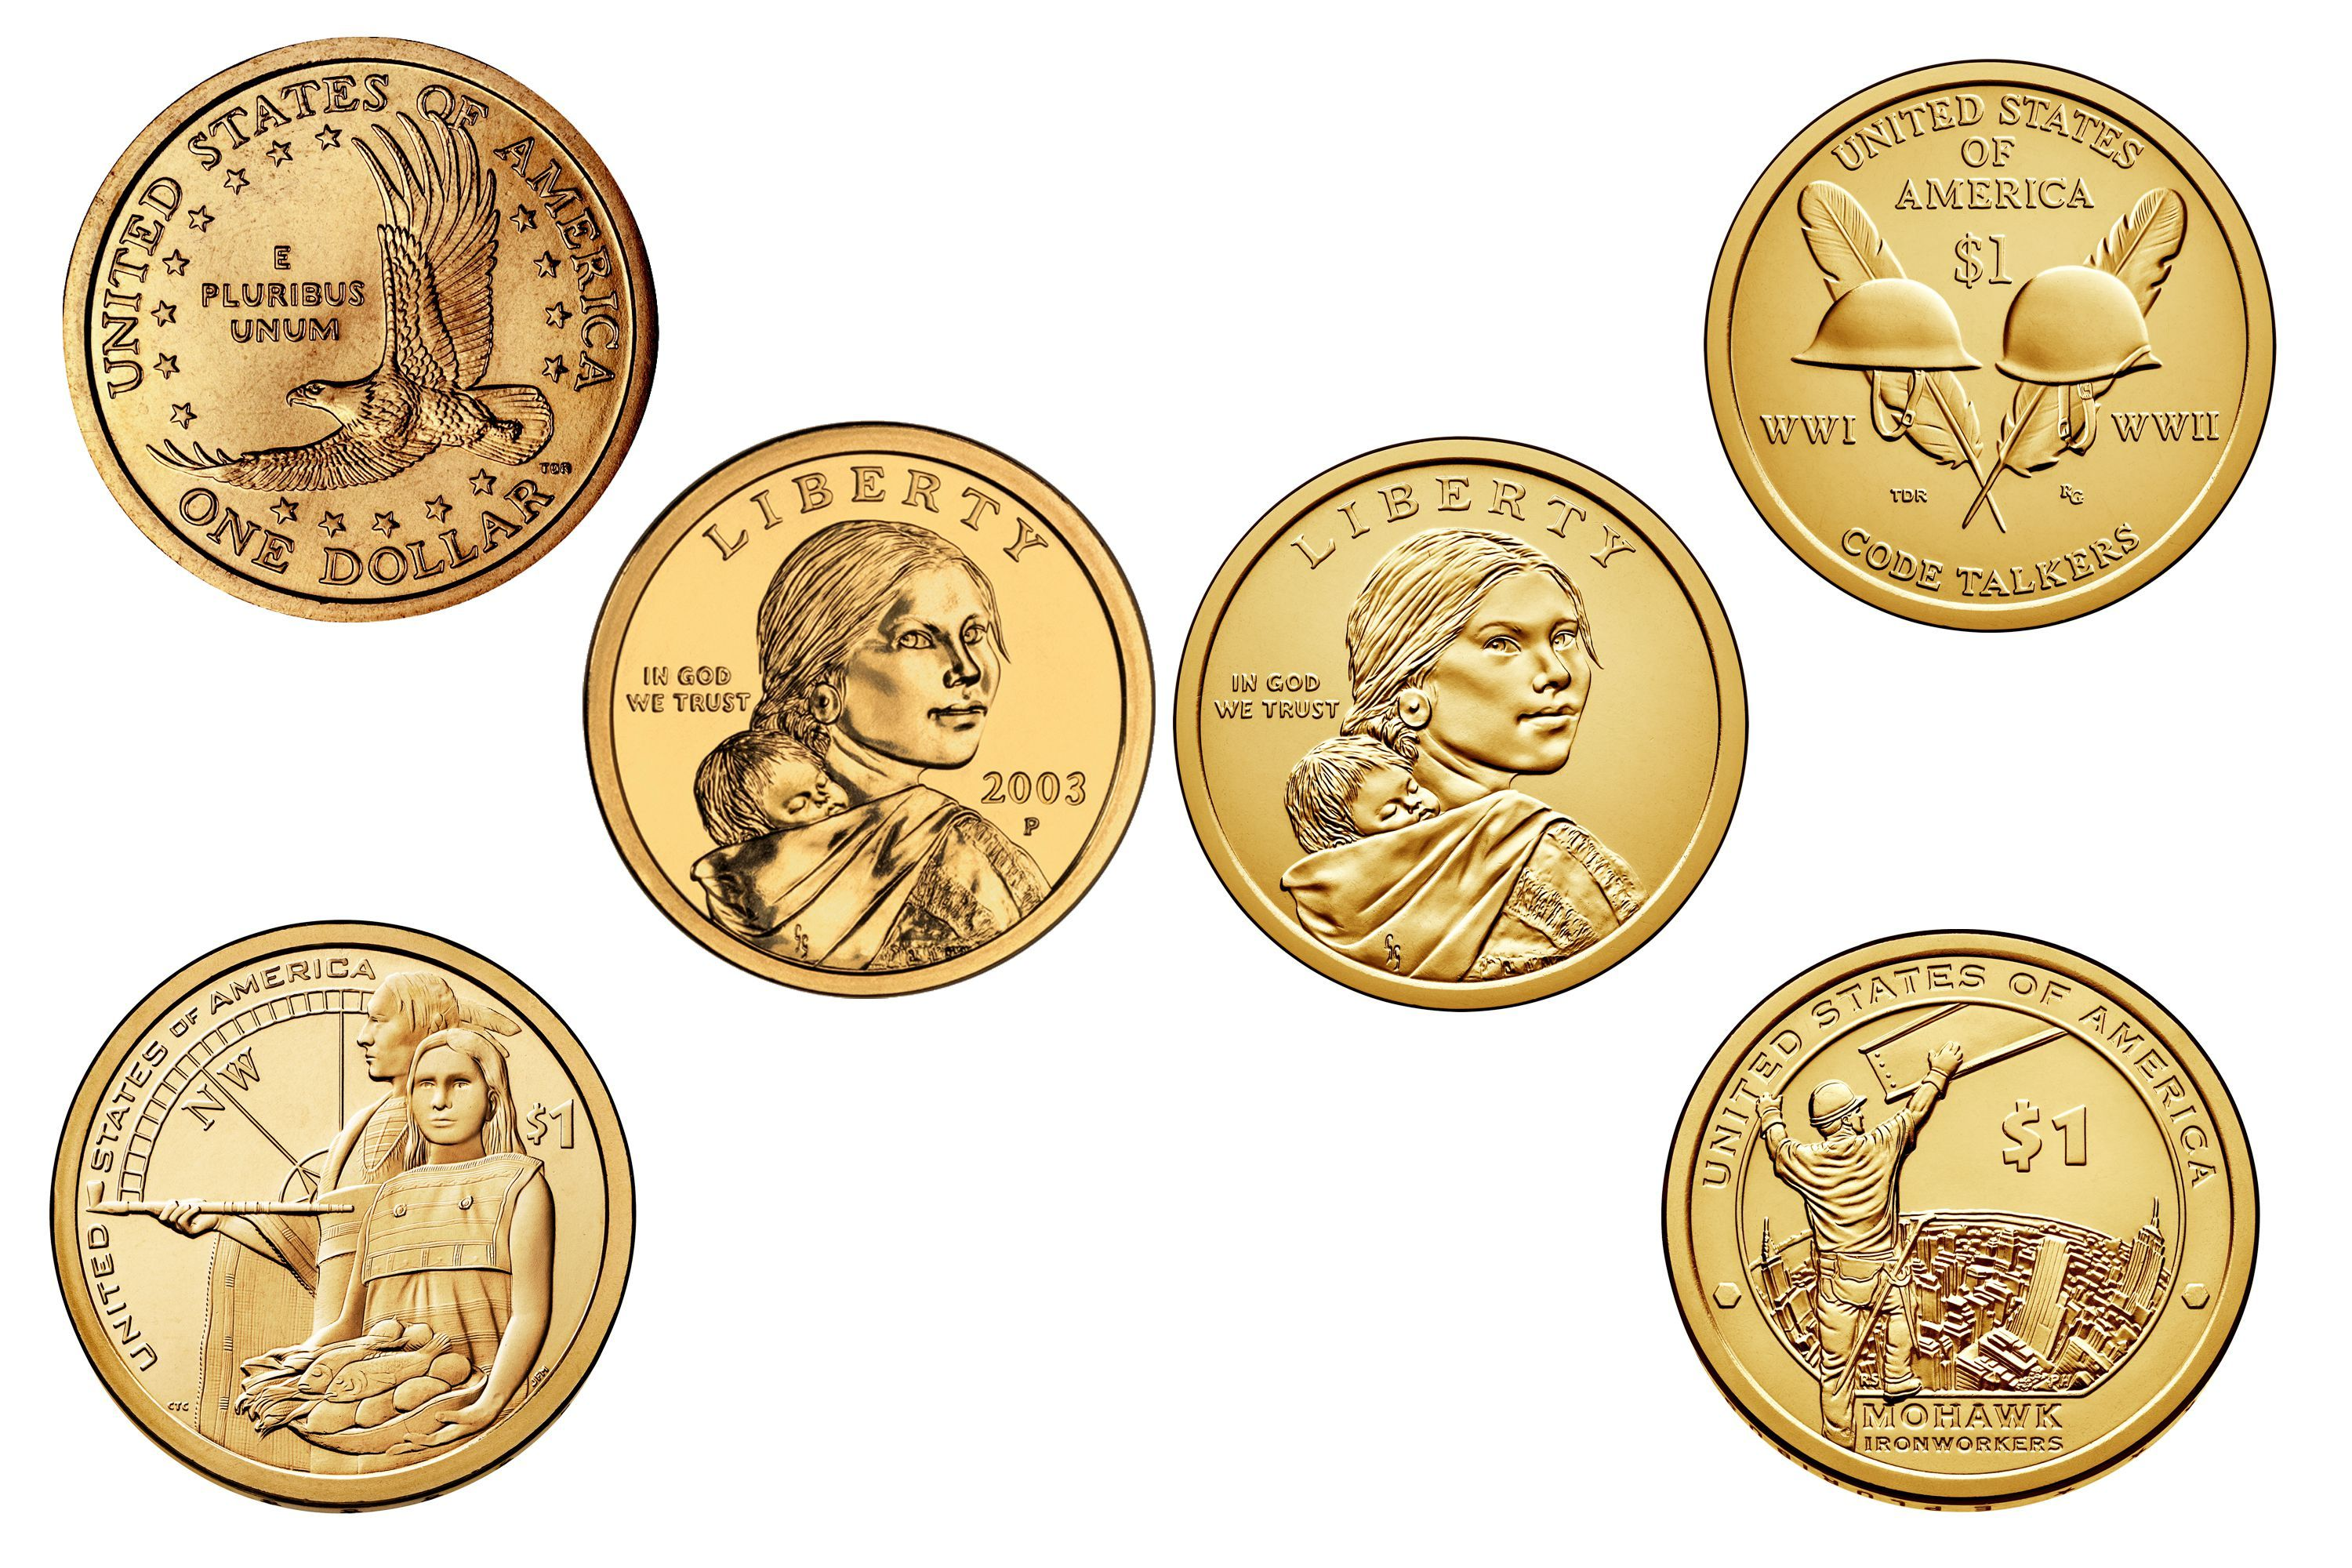 3 Sacagawea Dollars That Can Make You Rich Dollar Coin Value Sacagawea Dollar Gold Coin Values